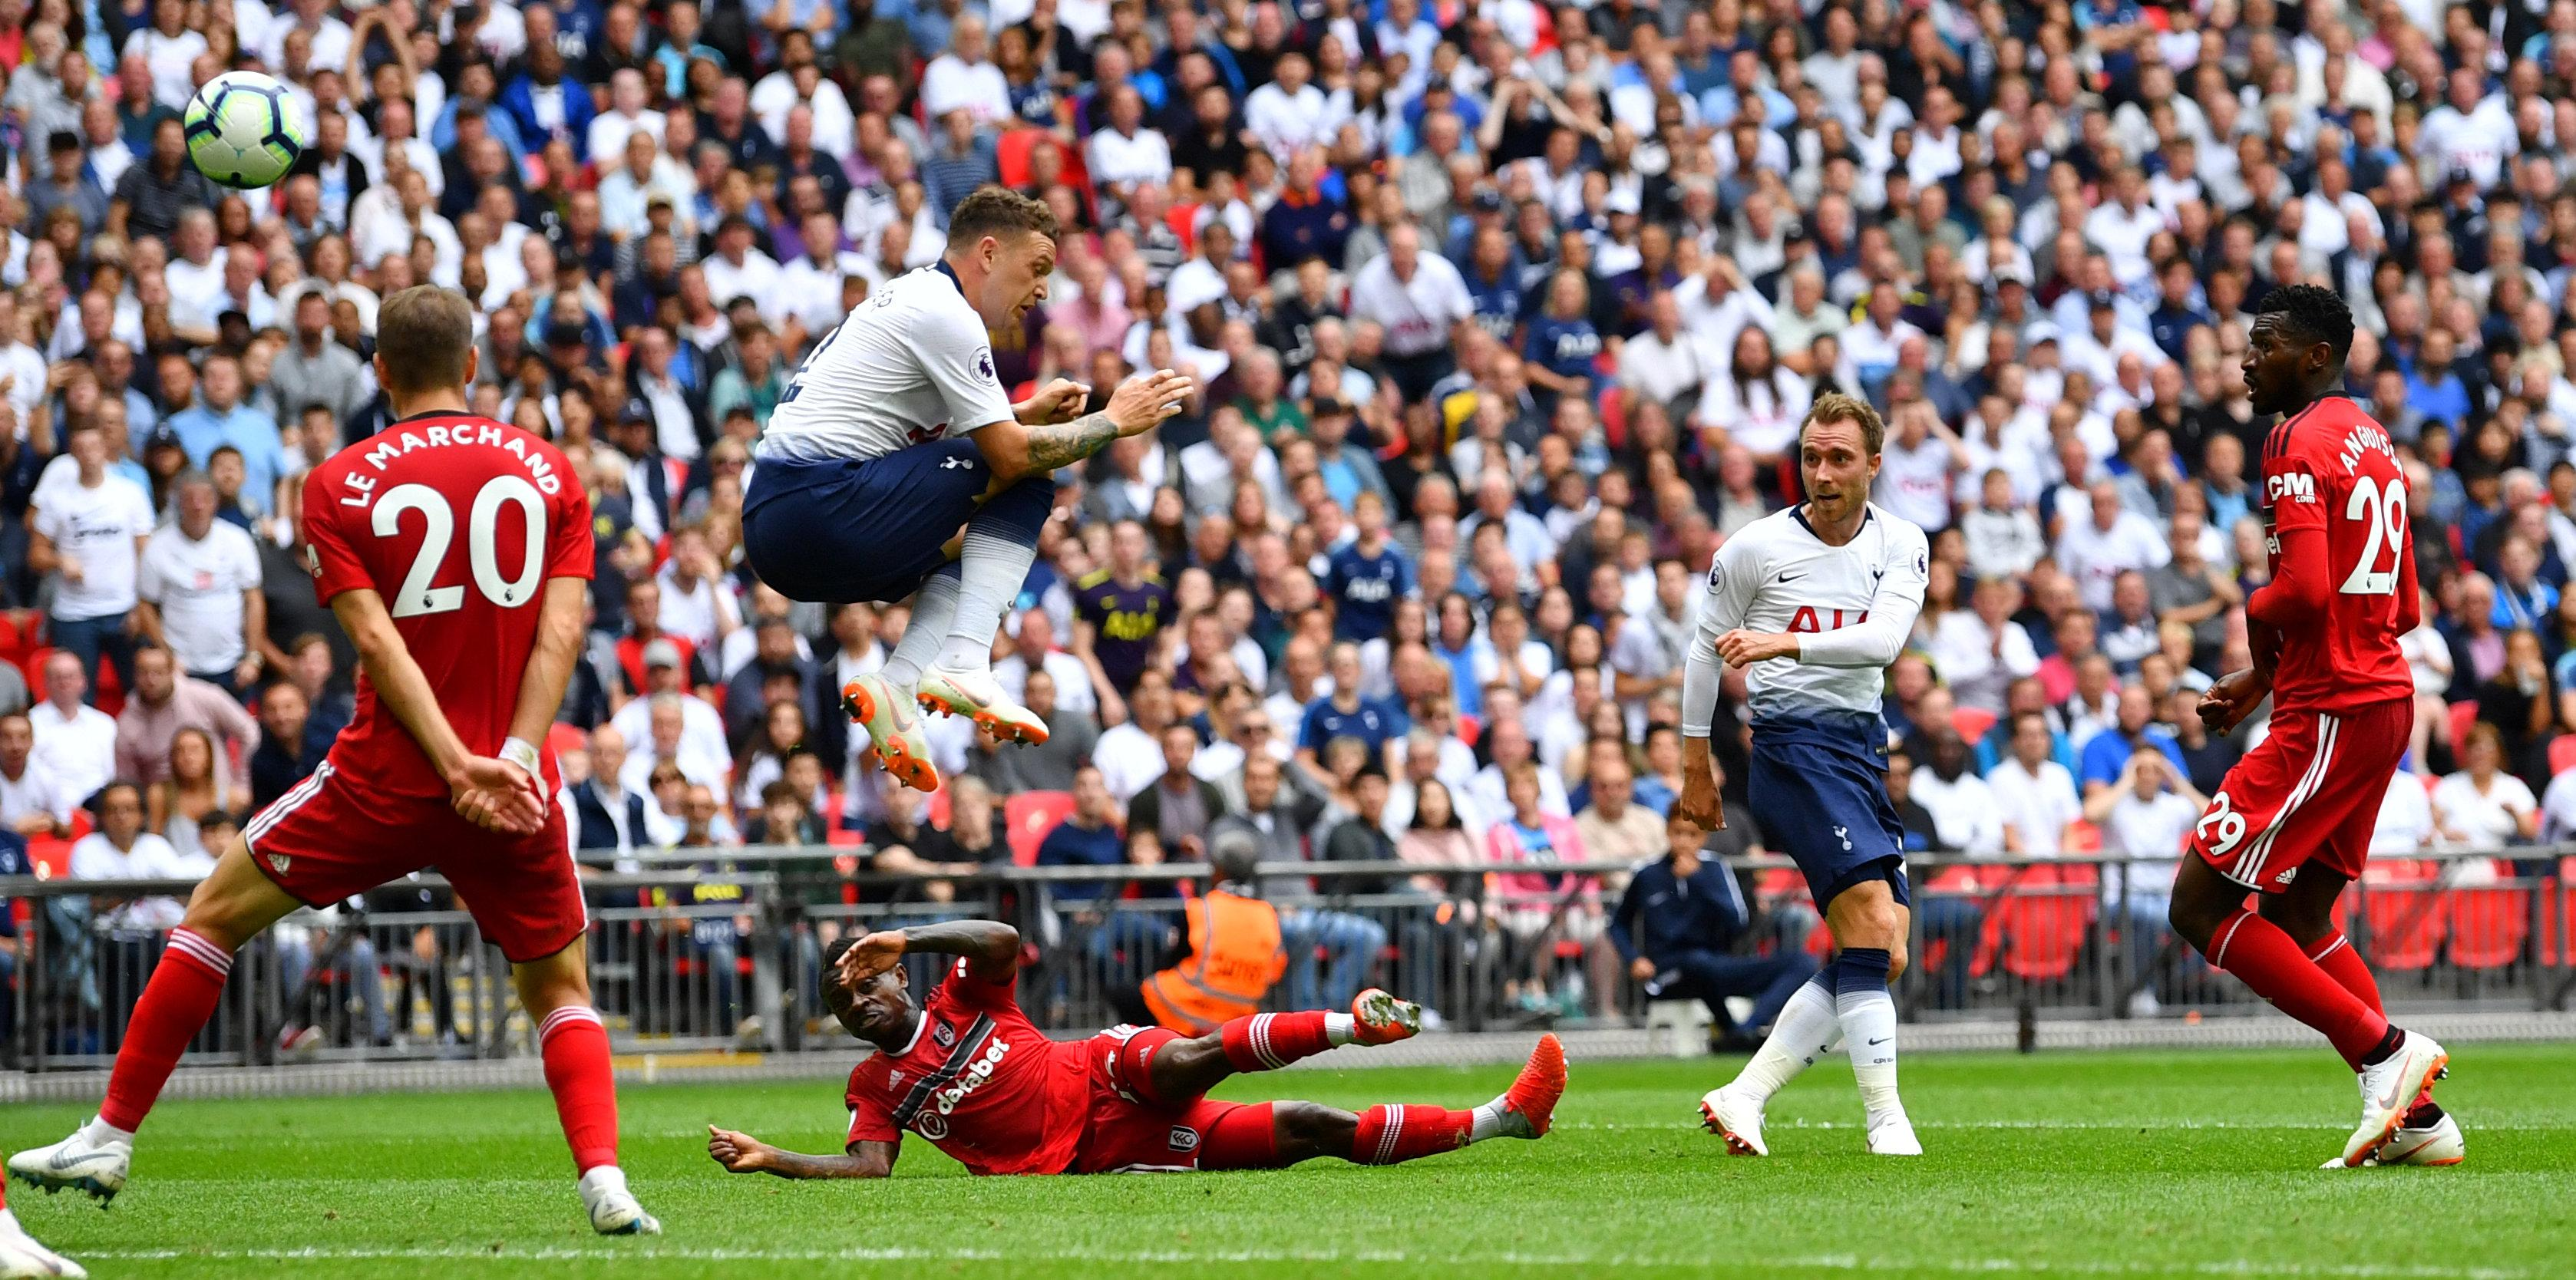 Lucas Moura bagged this fine curling effort to down Fulham